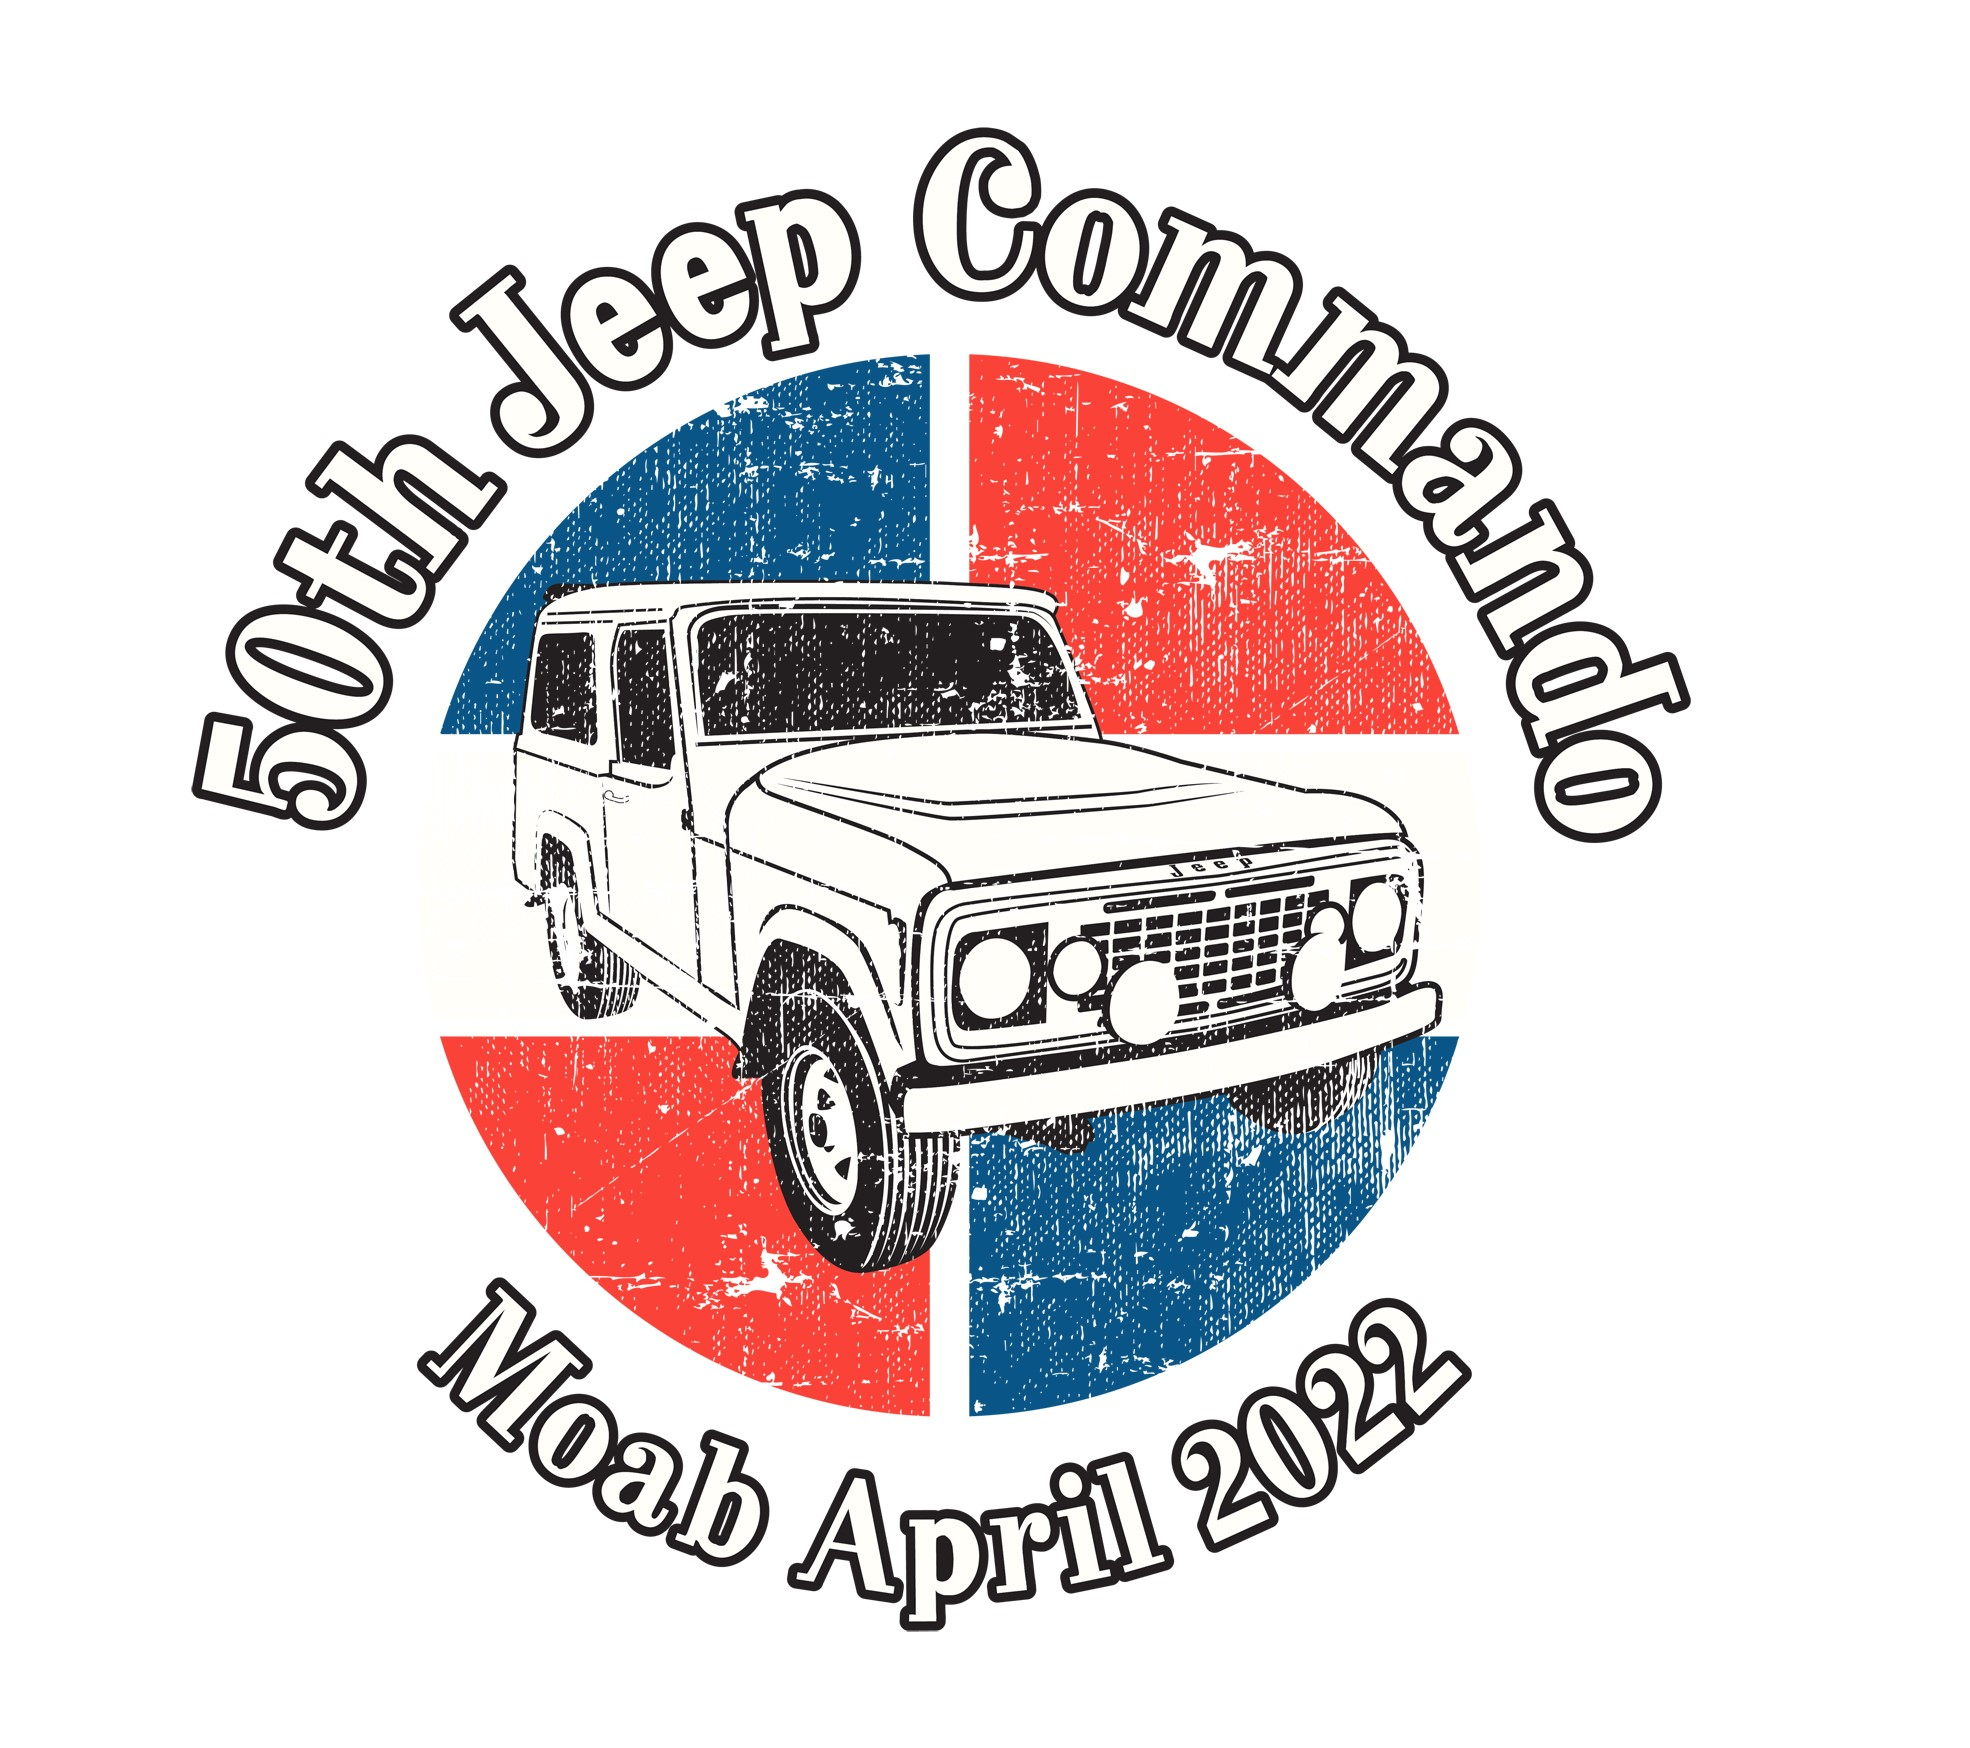 https://50thjeep.myecomshop.com/